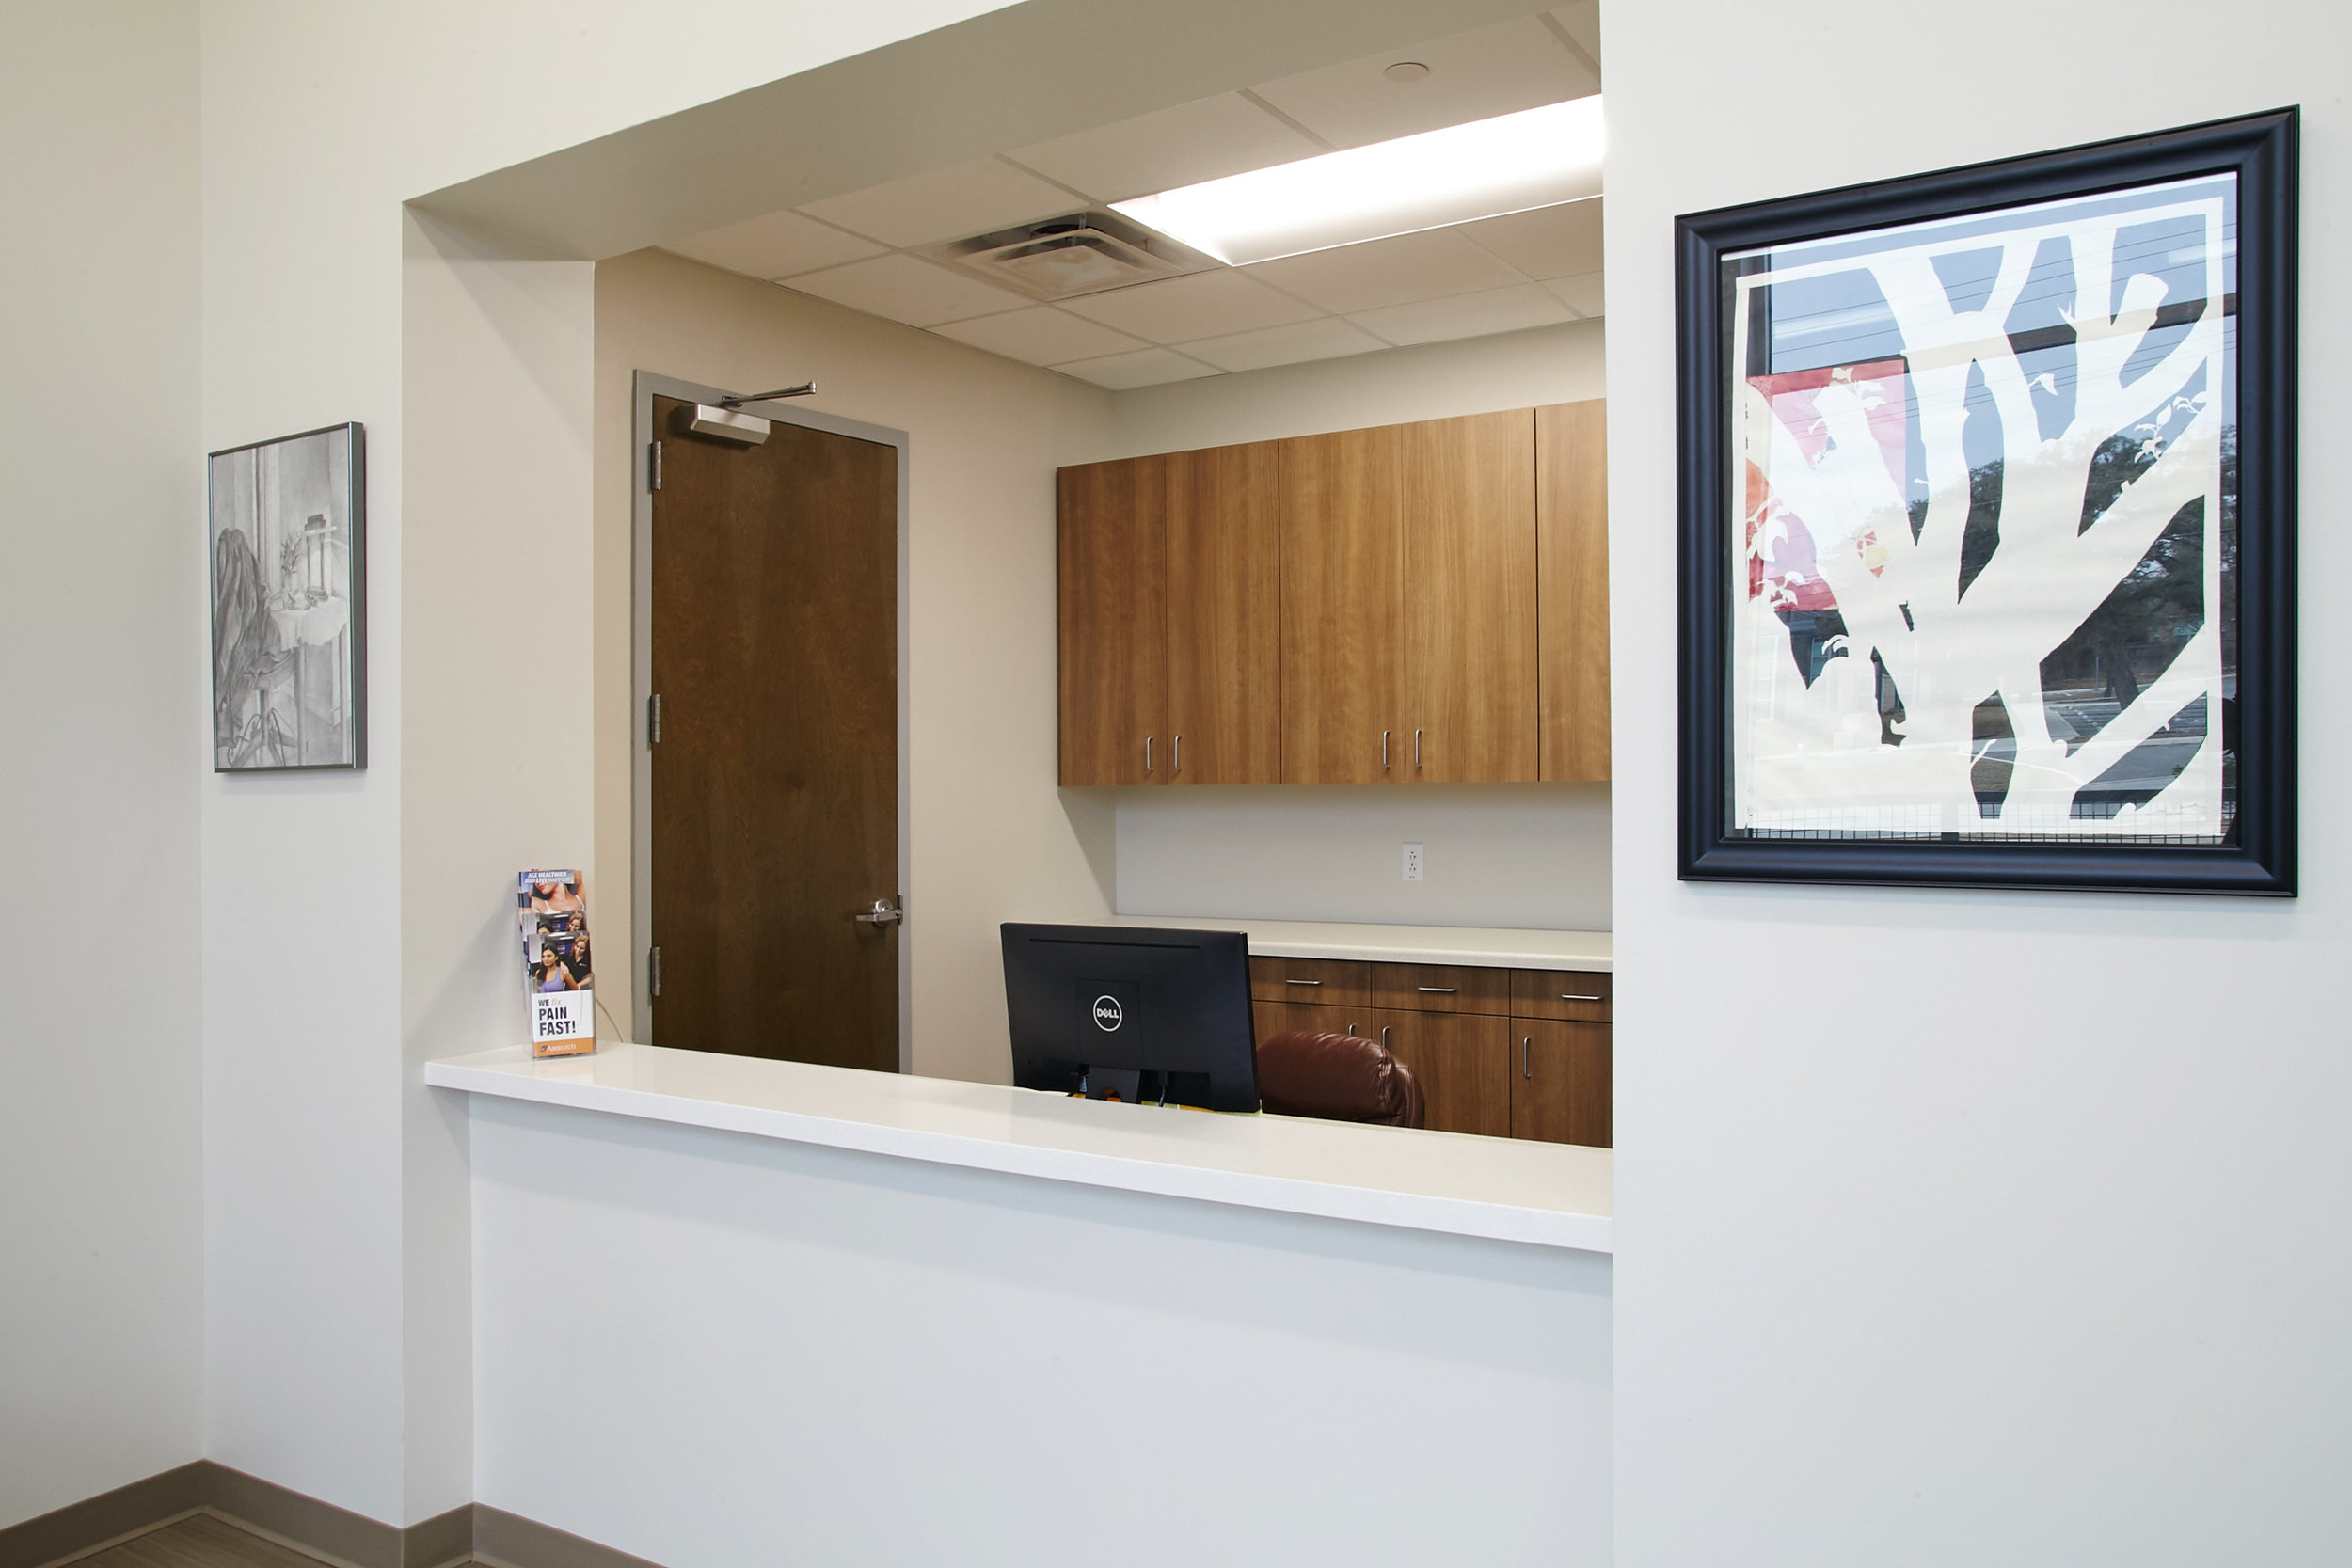 Hill Country Urgent Care_MG_1152.jpg